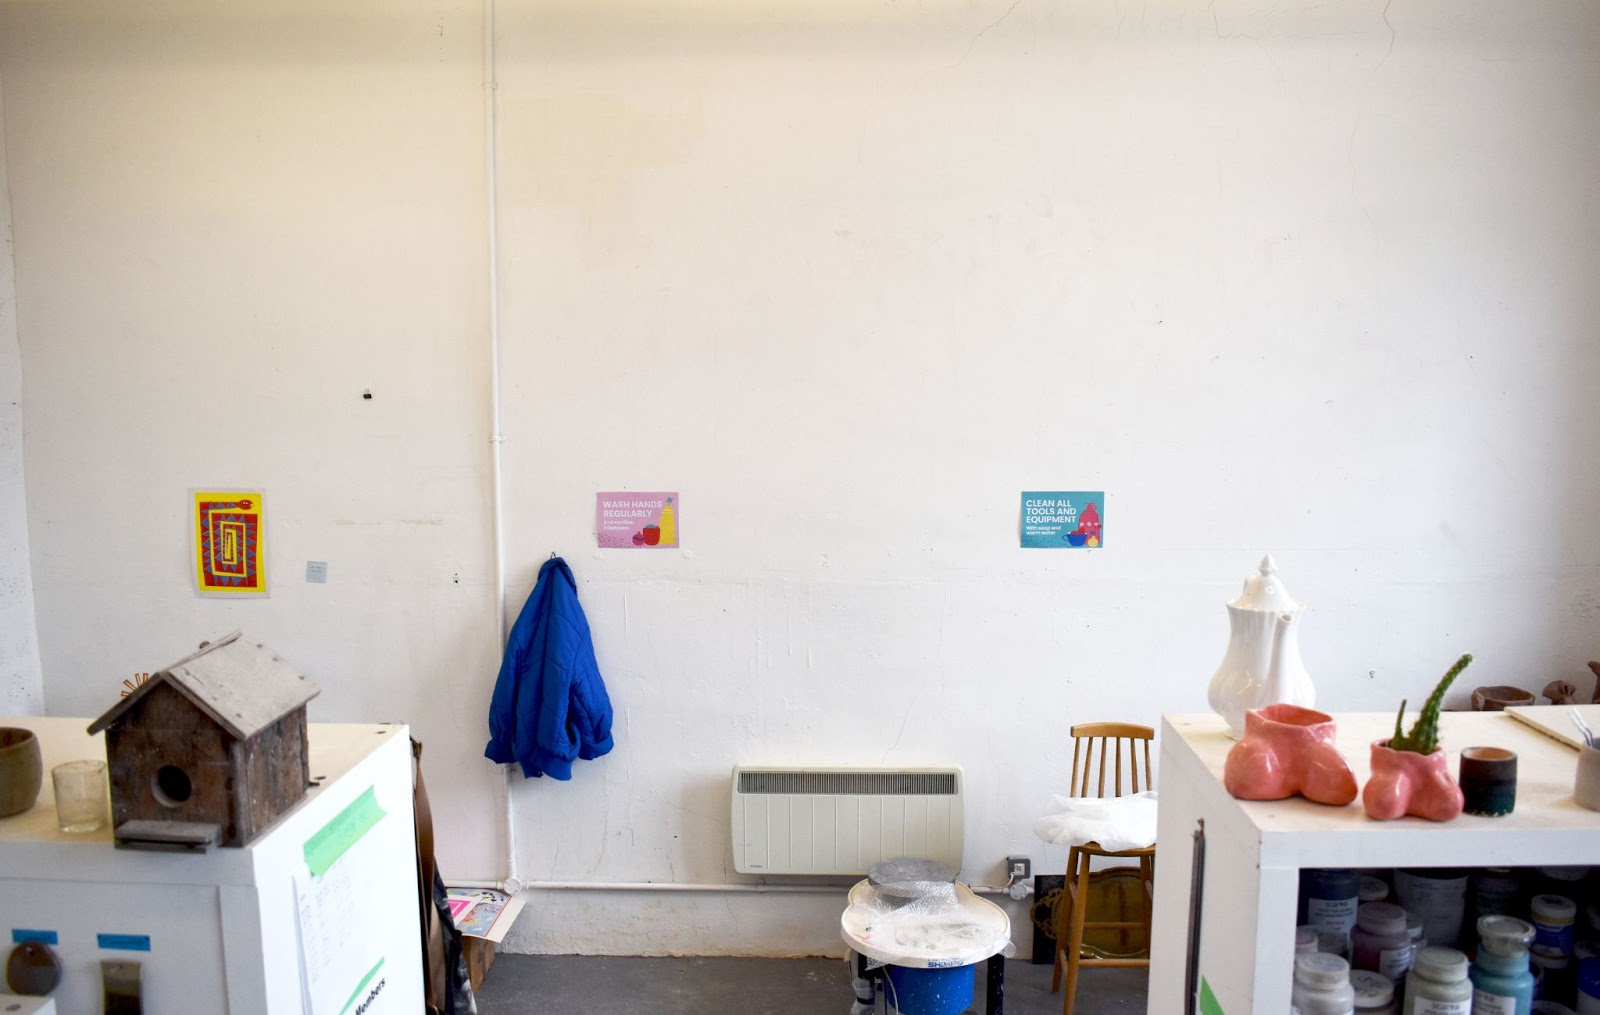 Open Call: Mural for Dundee Ceramics Workshop Image #0